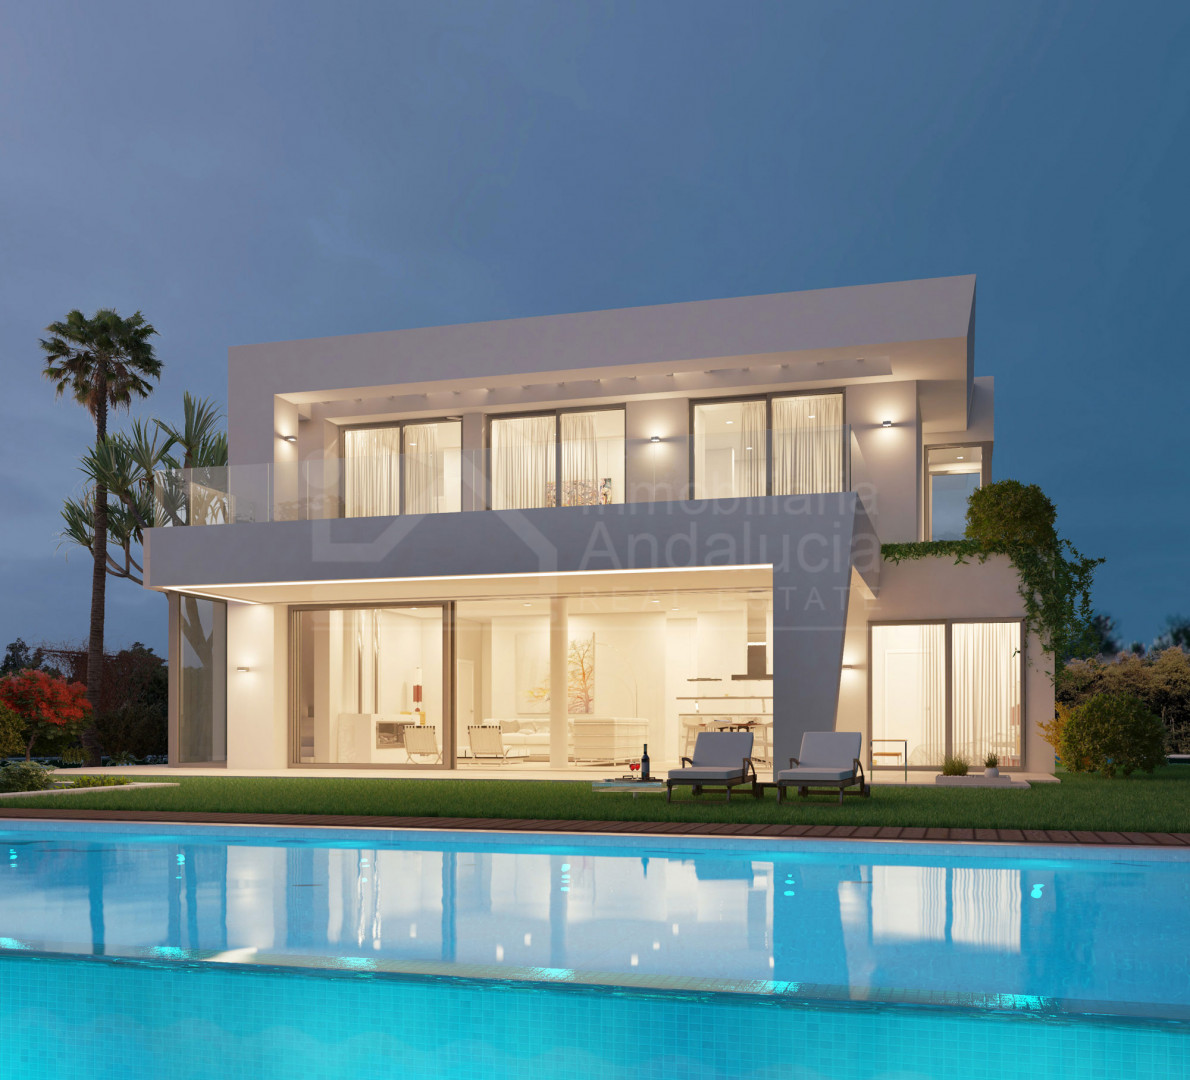 713m2 golf villa plot for sale with permission to build in Casares